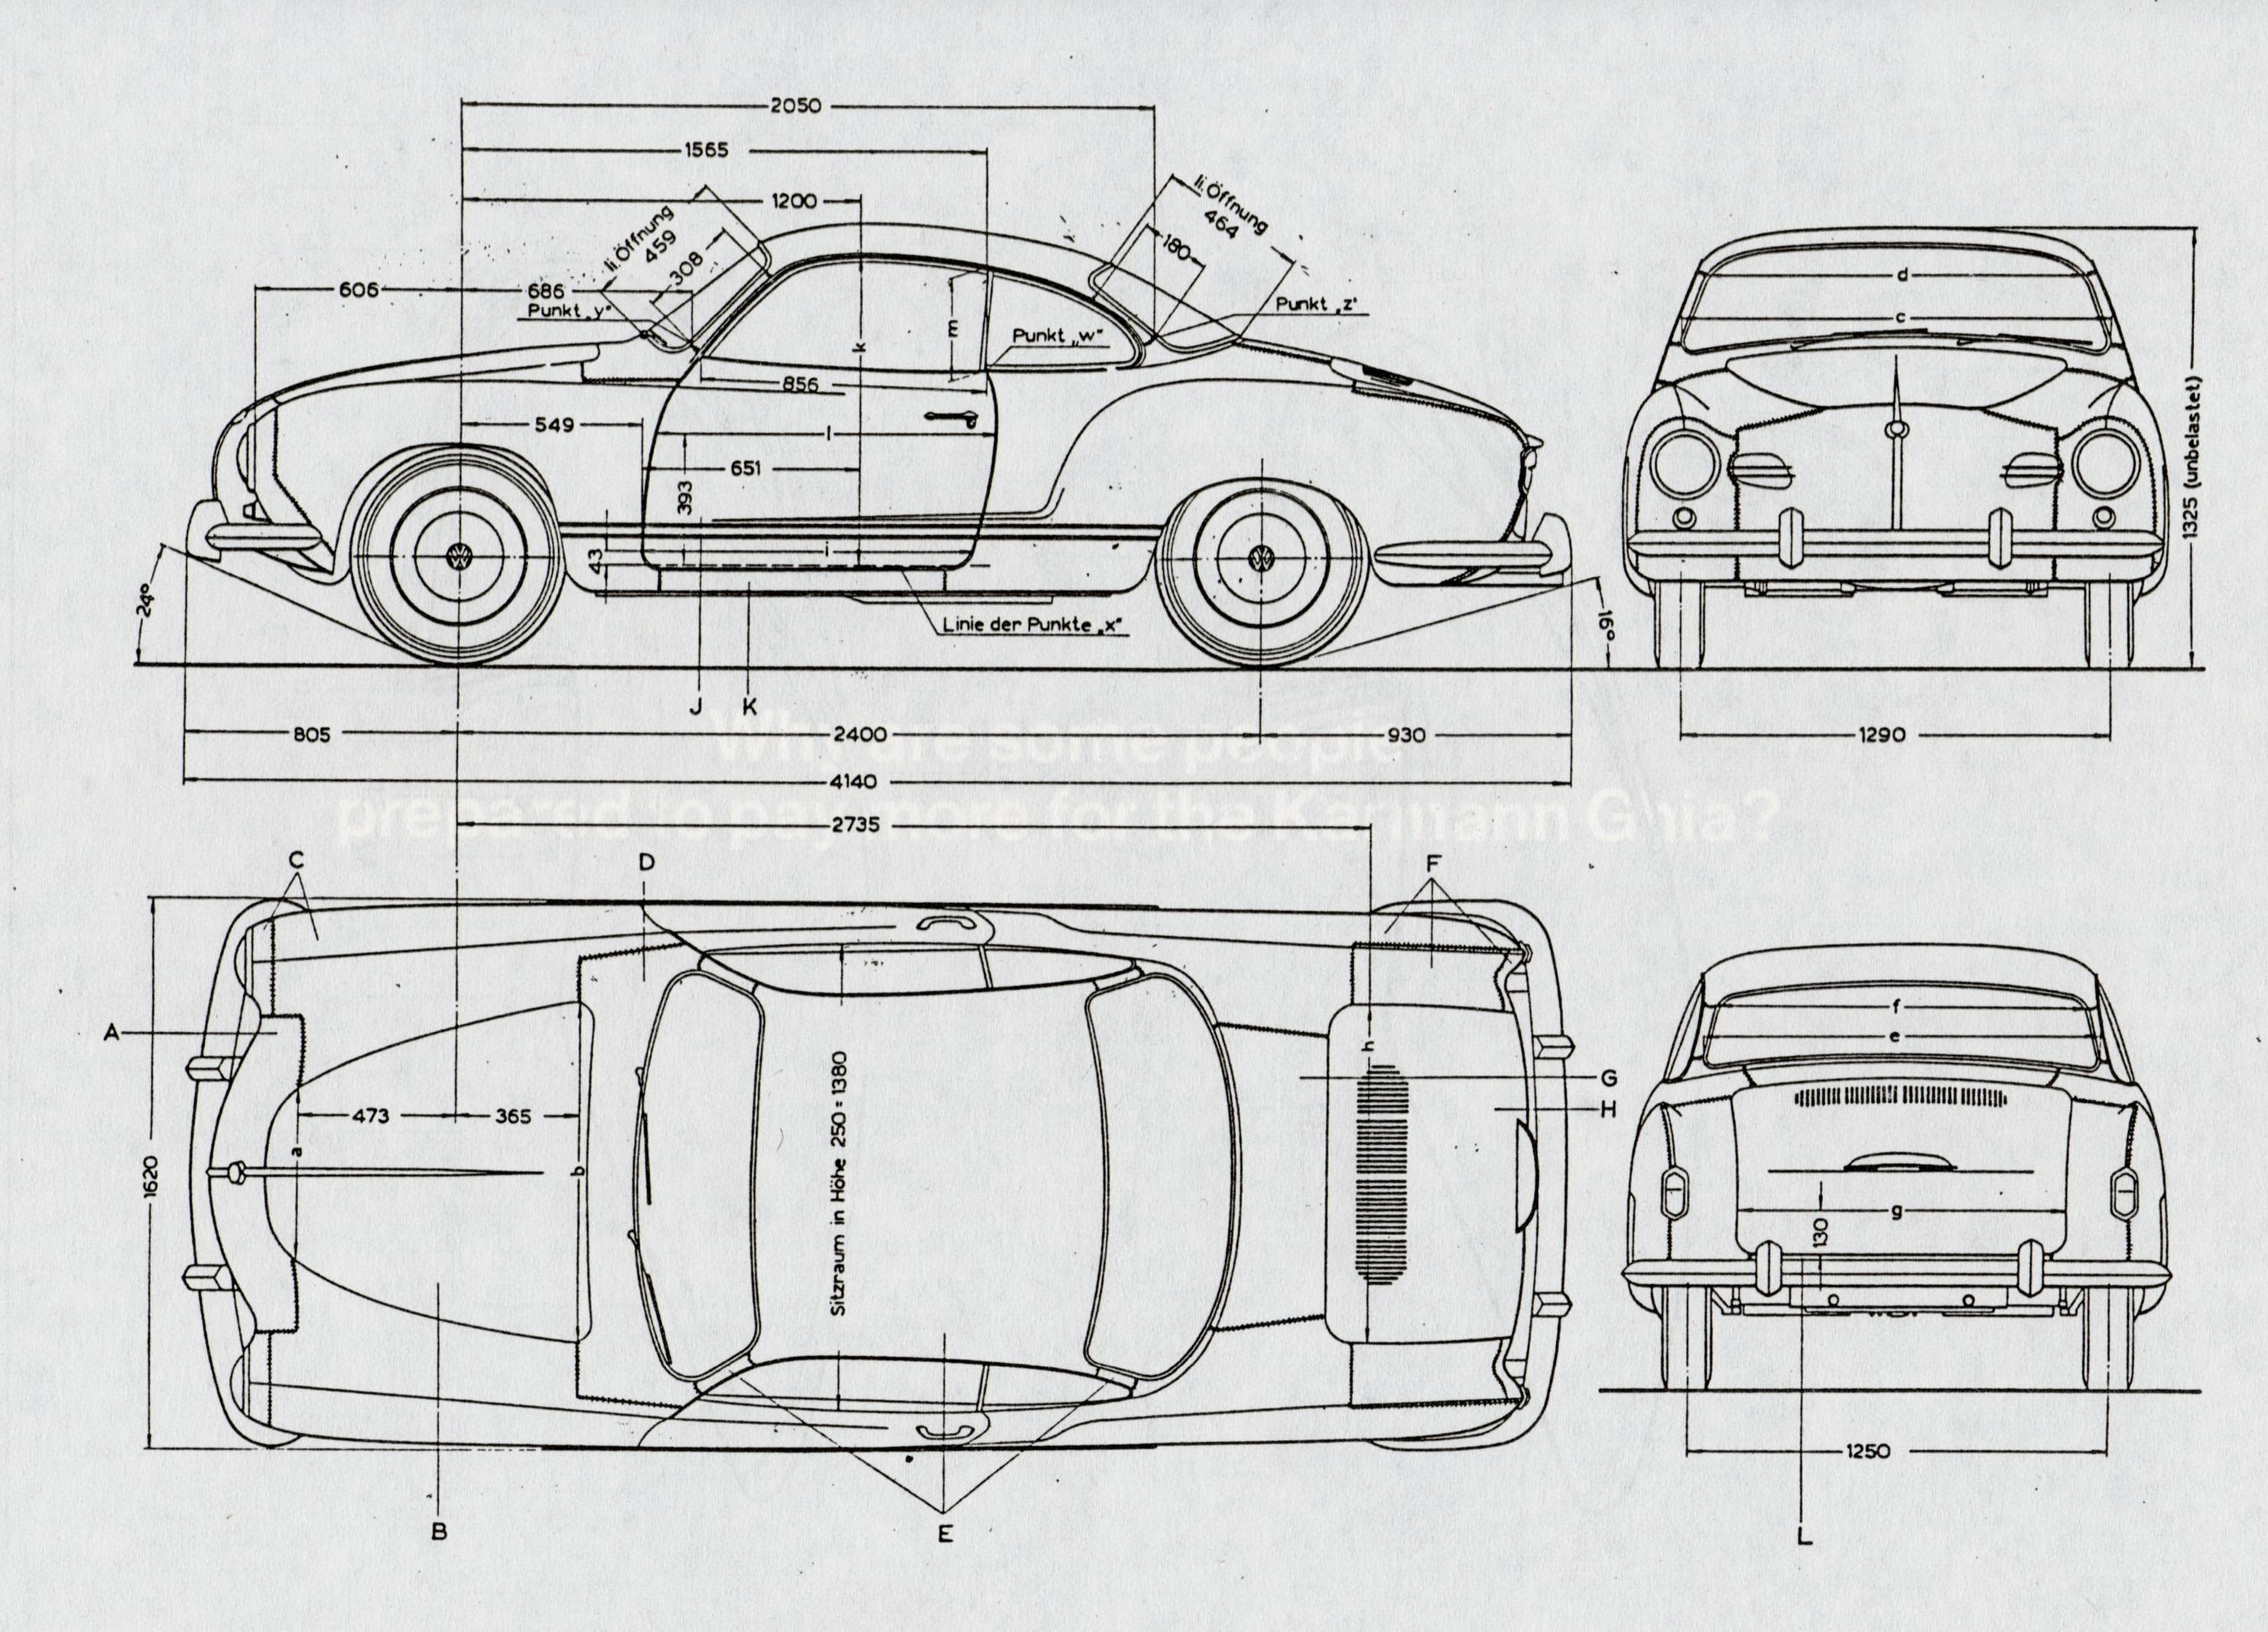 1 1974 volkswagen karmann ghia car